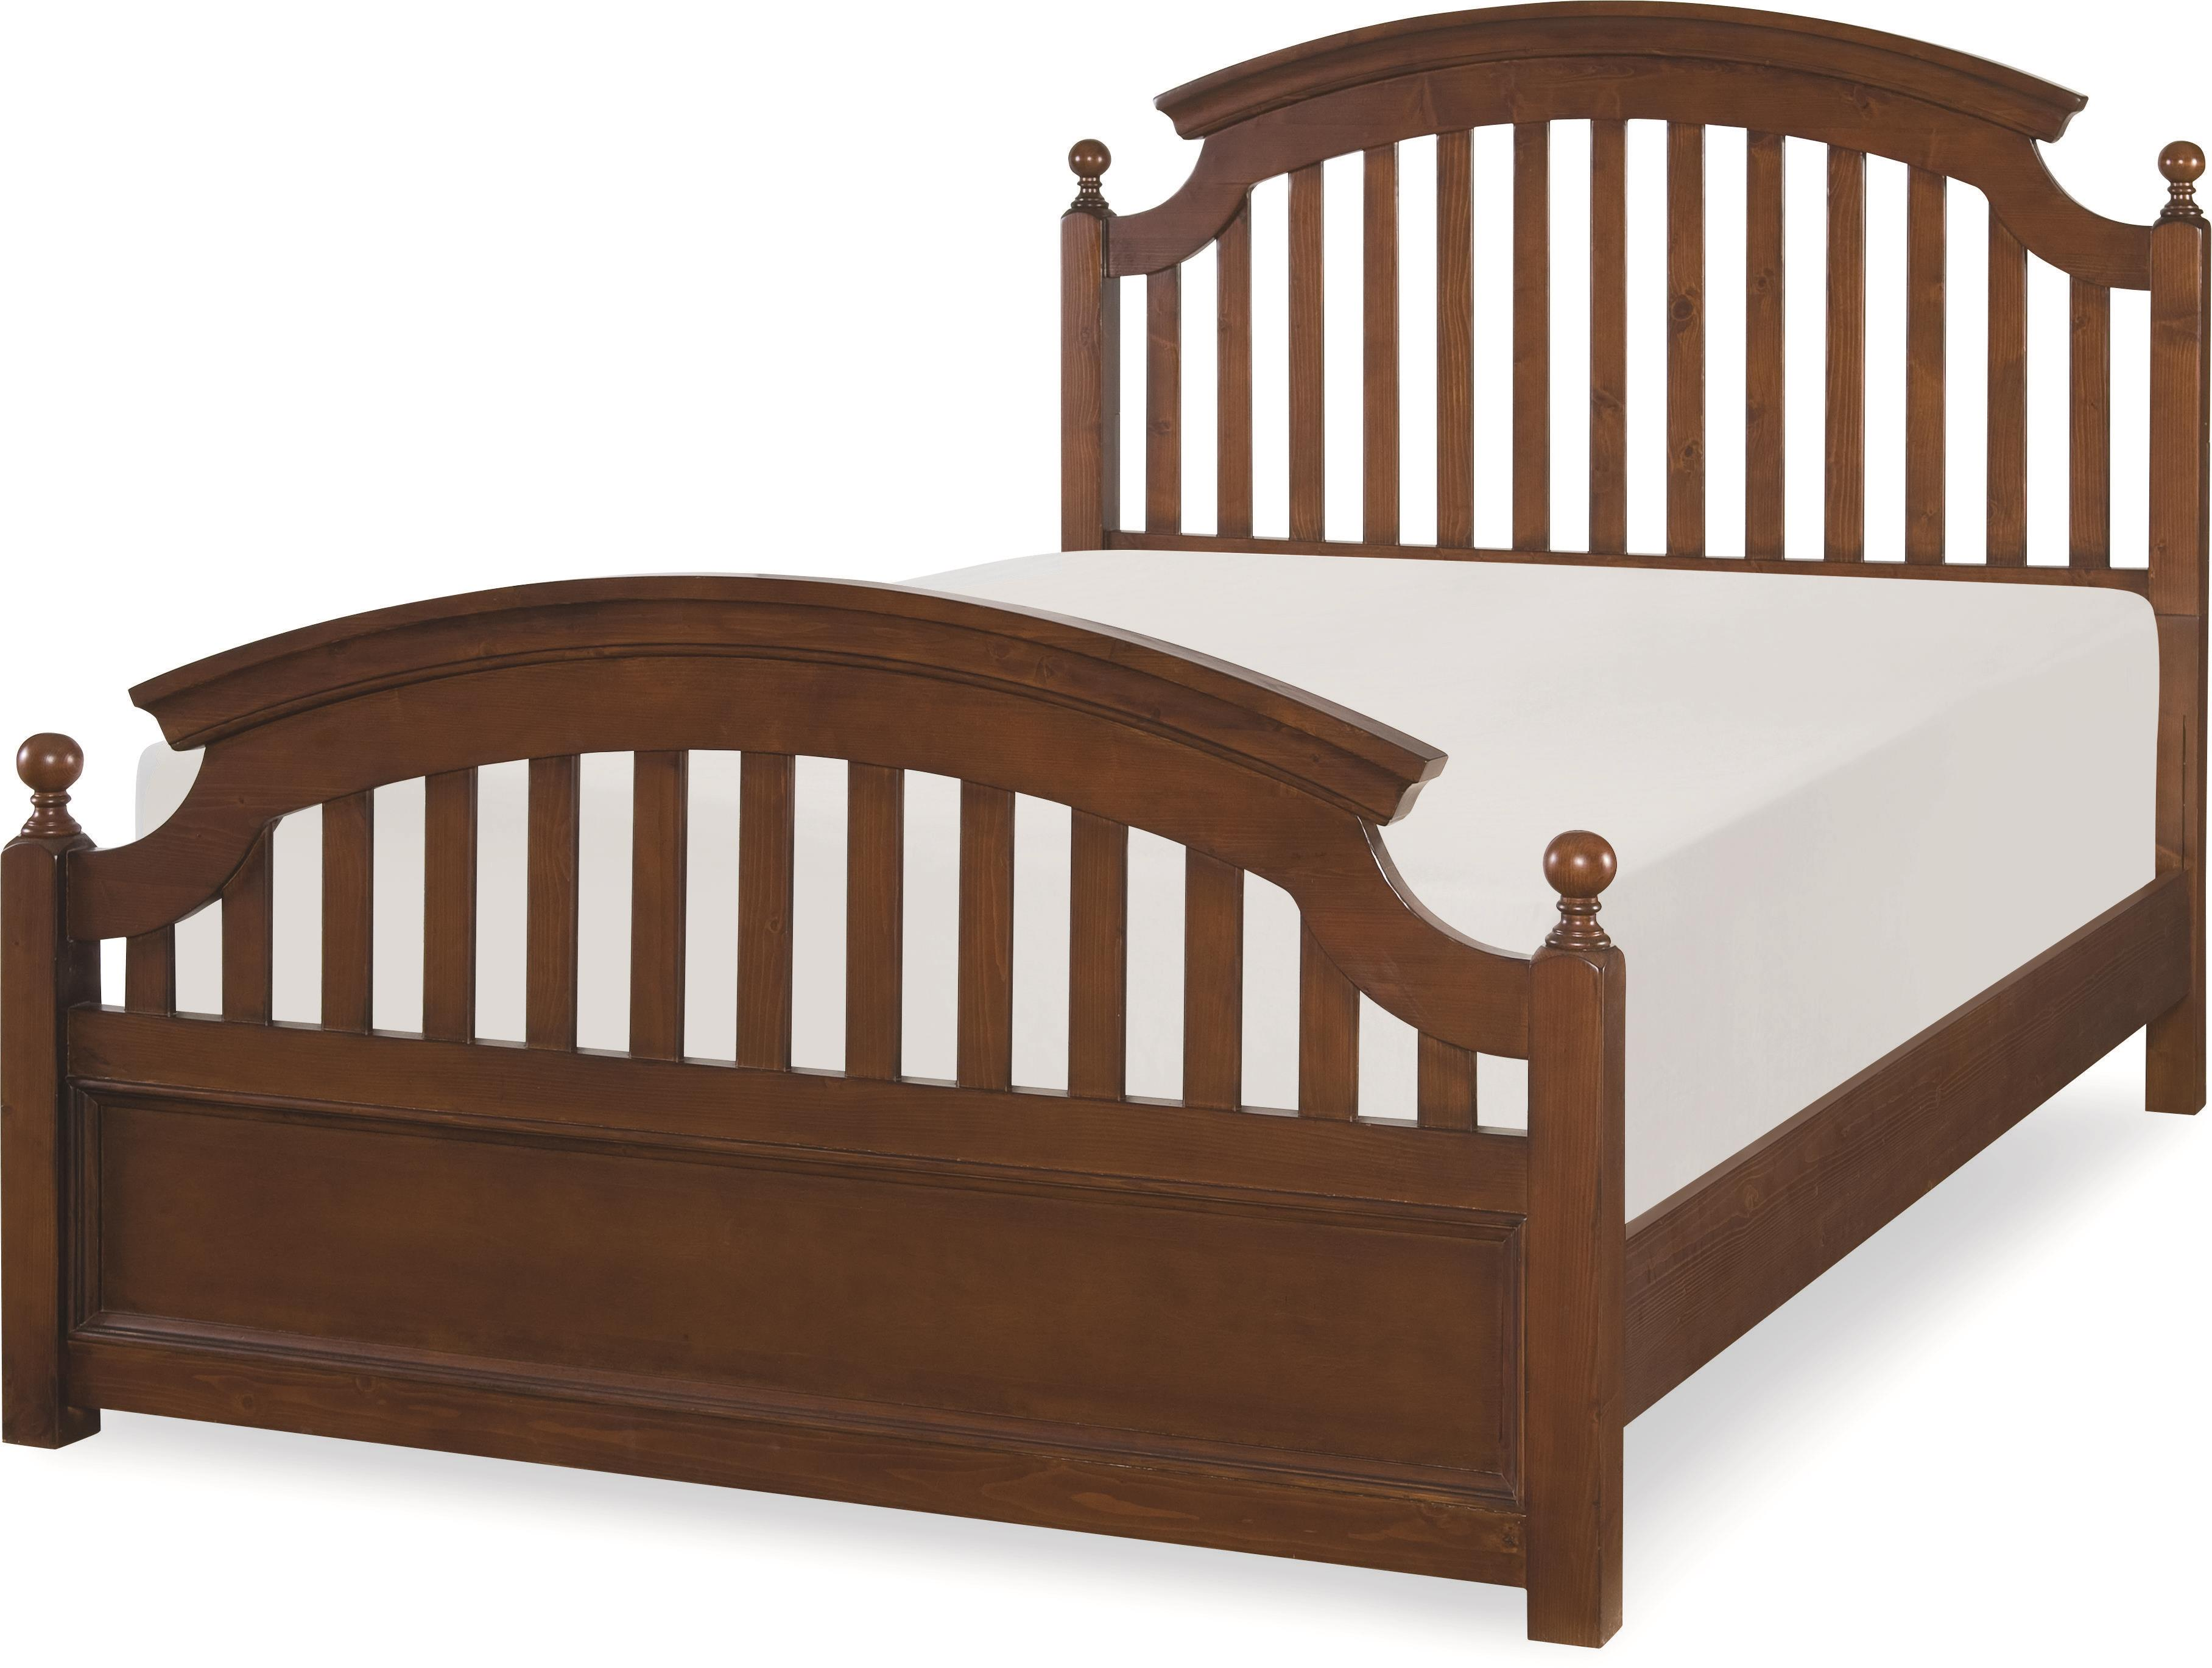 Legacy Classic Kids Academy Full Panel Bed - Item Number: 5812-4104K